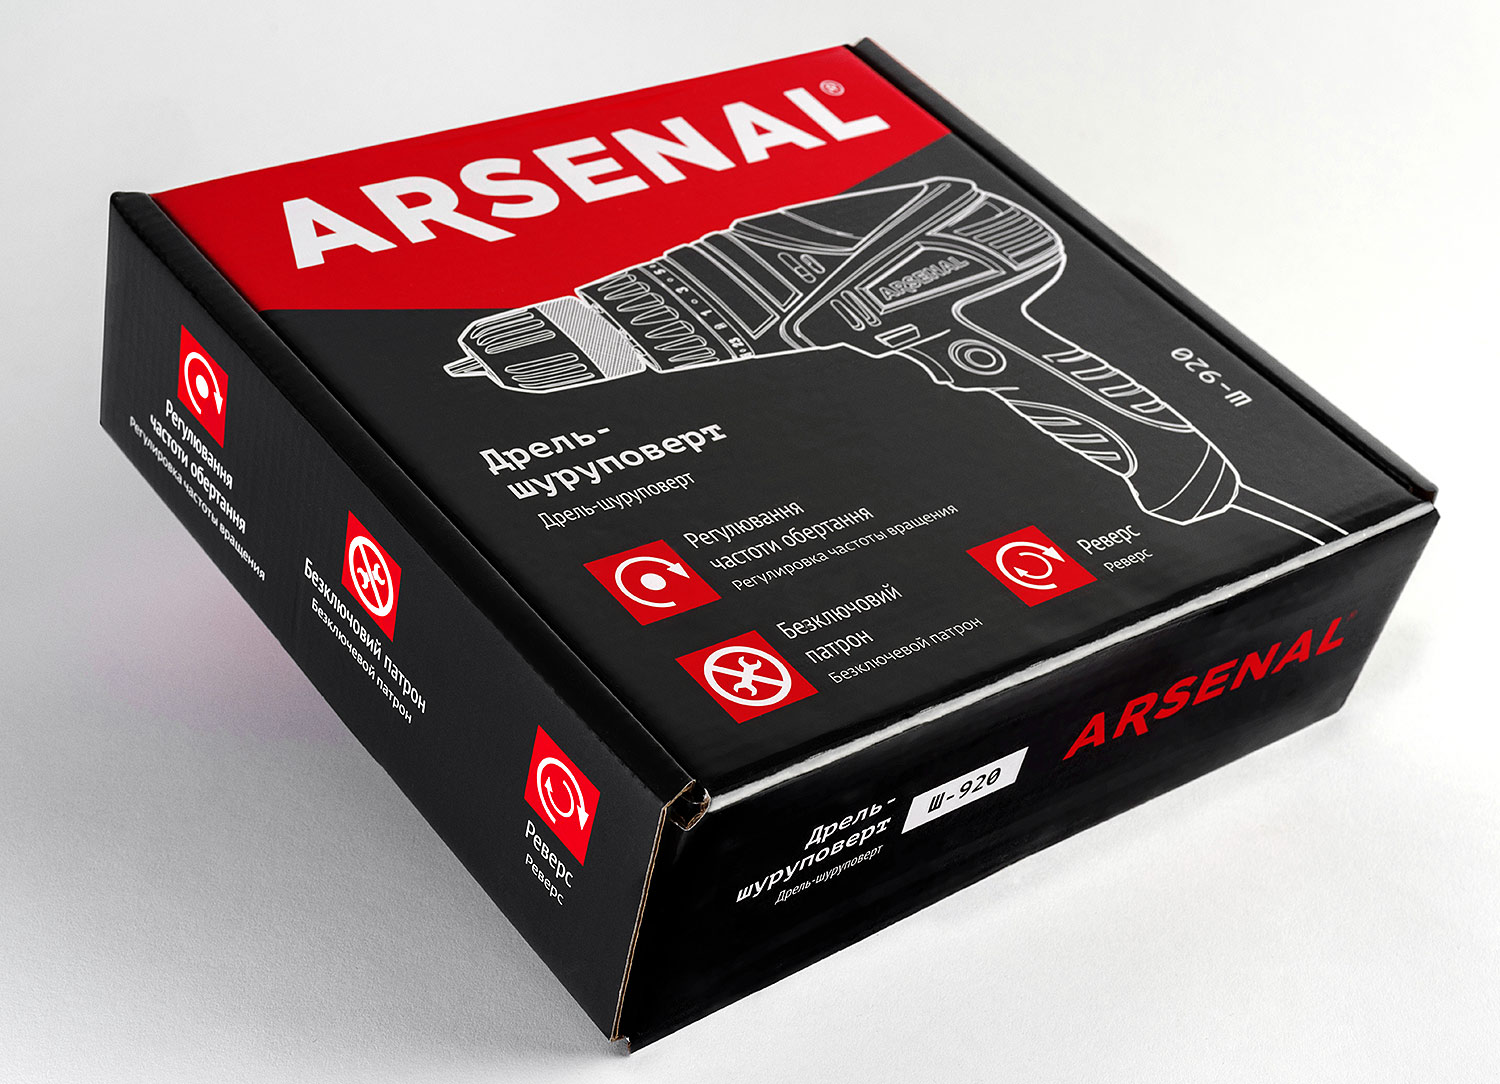 Illustrated packaging for electric power tools. ARSENAL drill/screwdriver linear illustration. Construction tool.